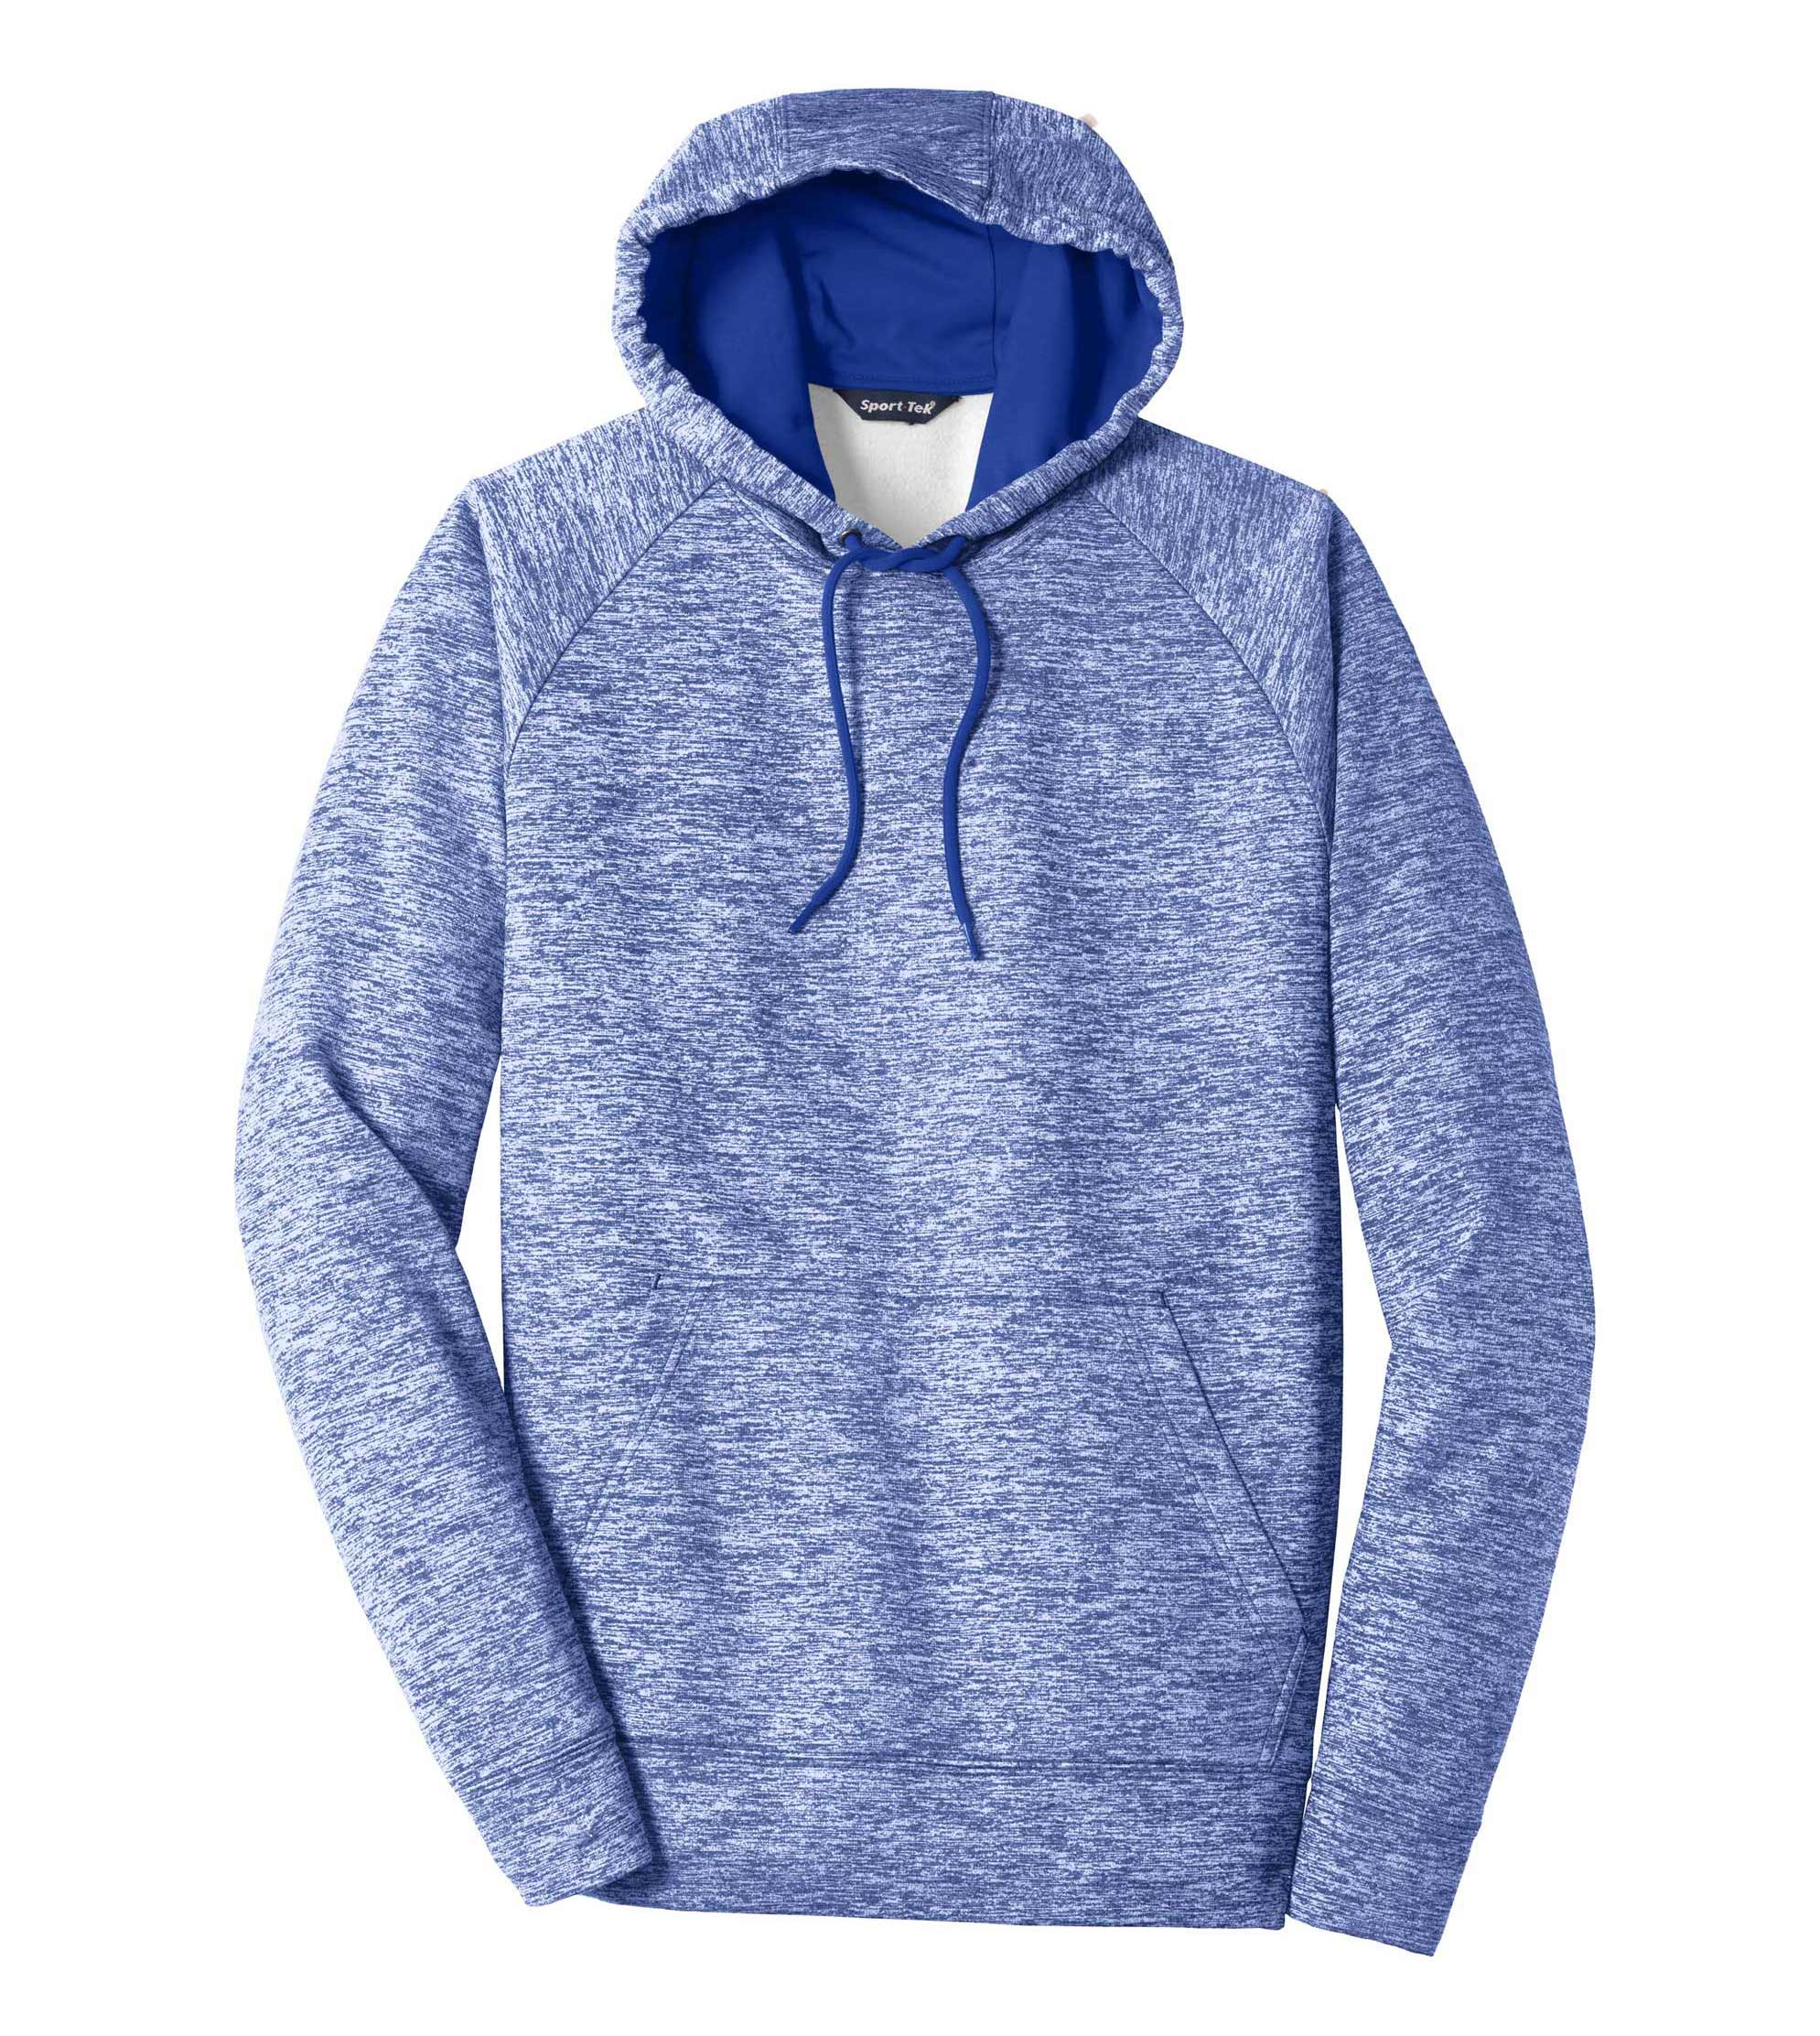 Adult Sport-Tek PosiCharge Electric Heather Fleece Hooded Pullover